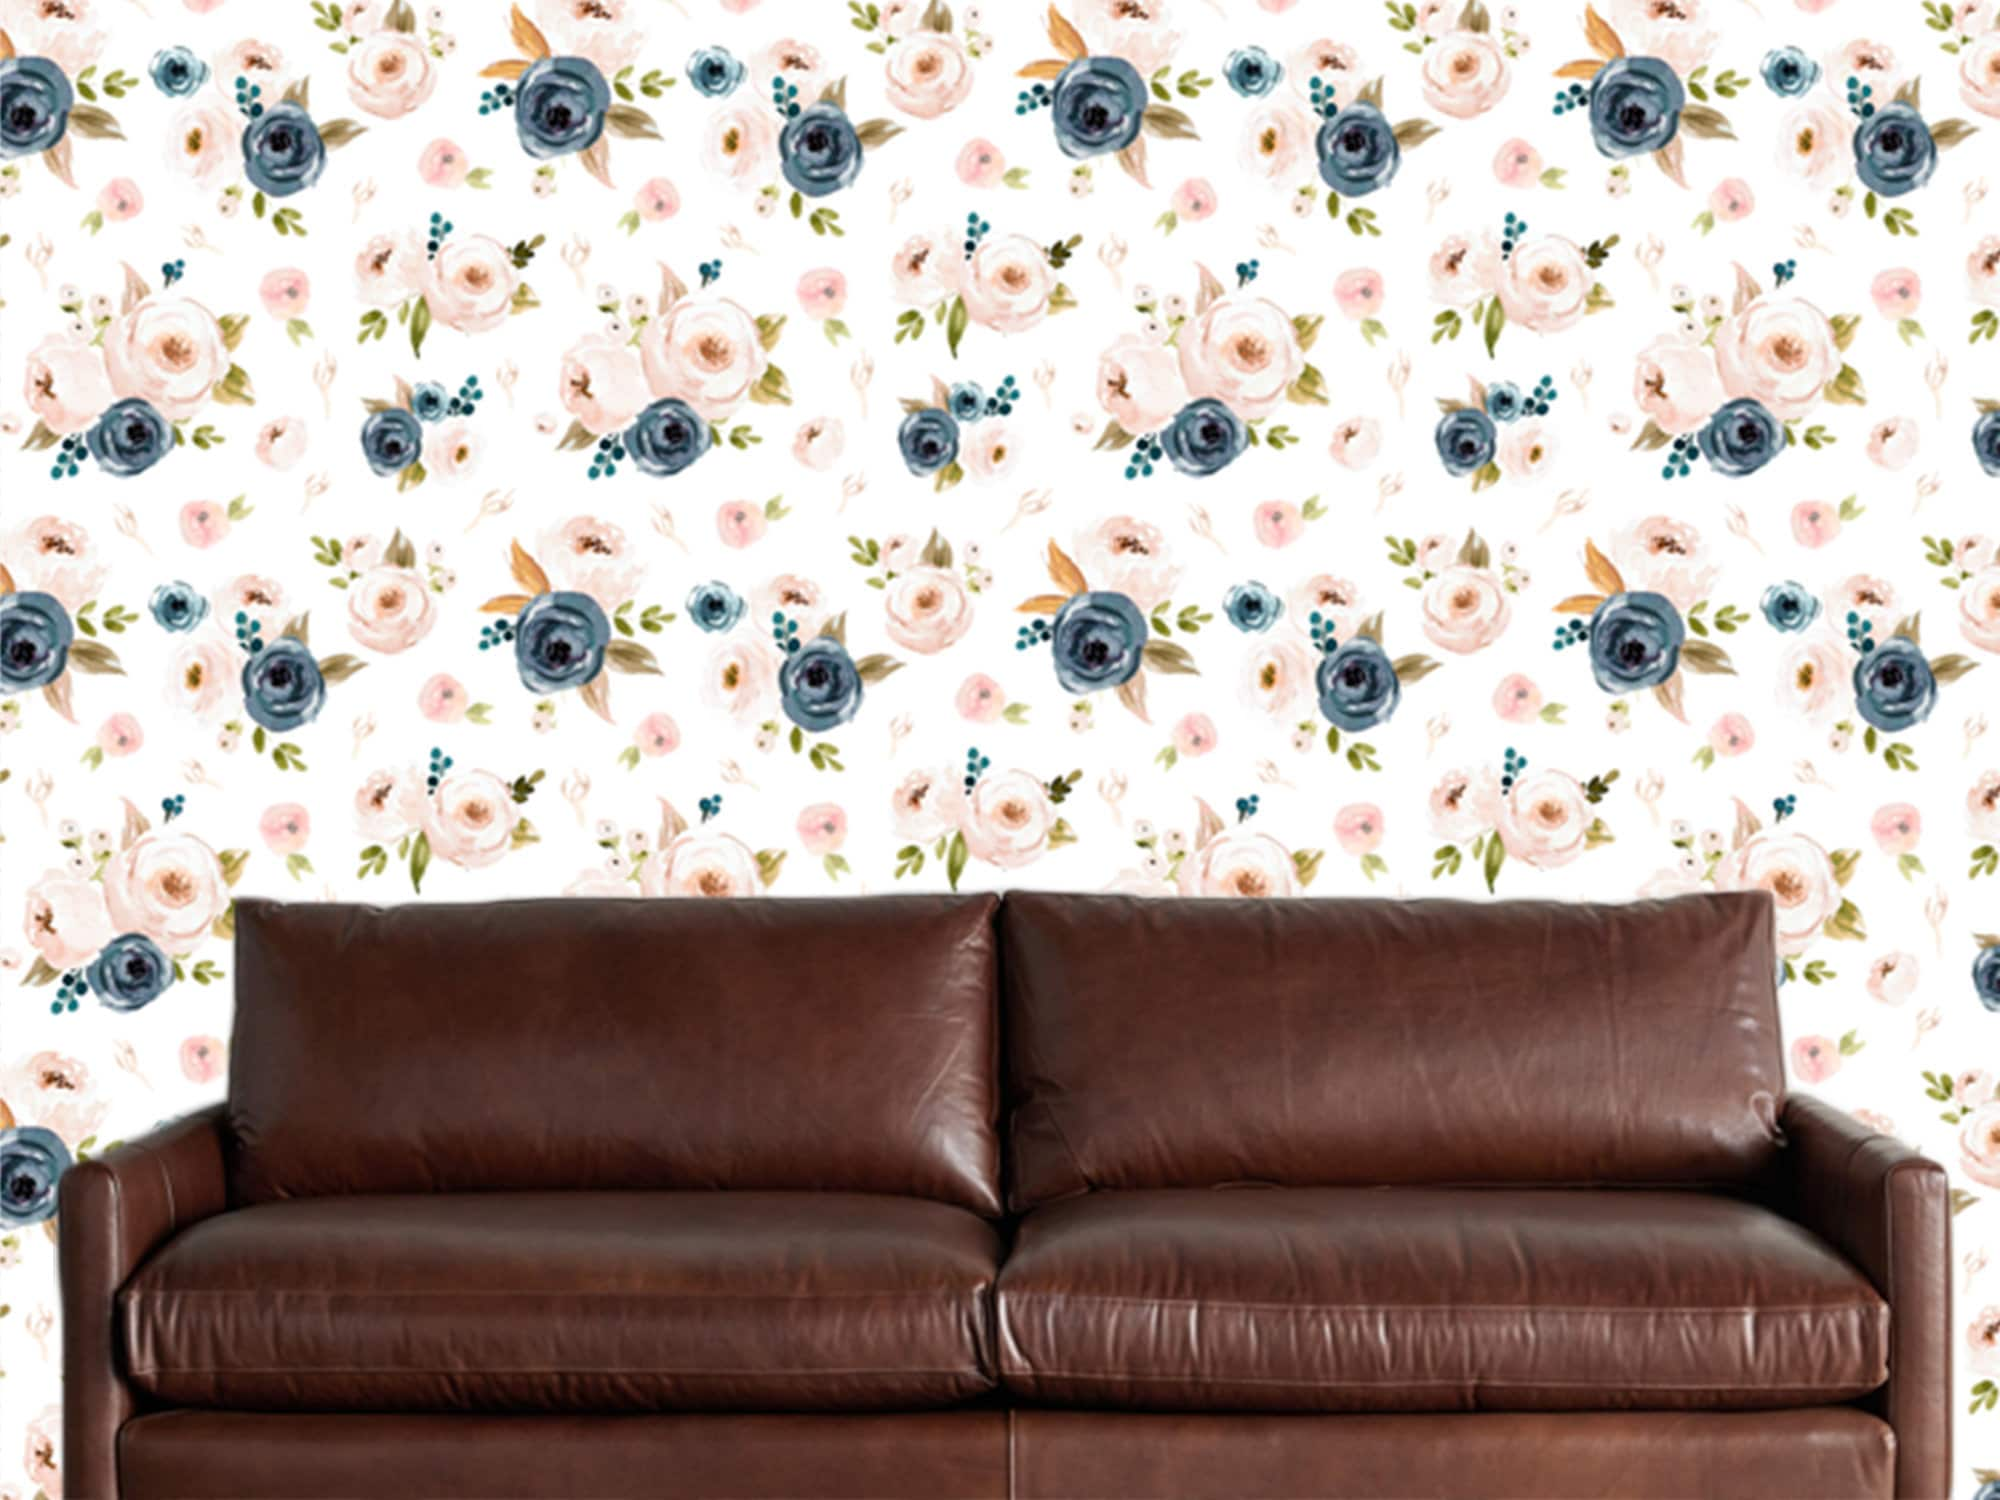 Pink Blue Floral Wallpaper Removable Traditional Wallpaper Peel